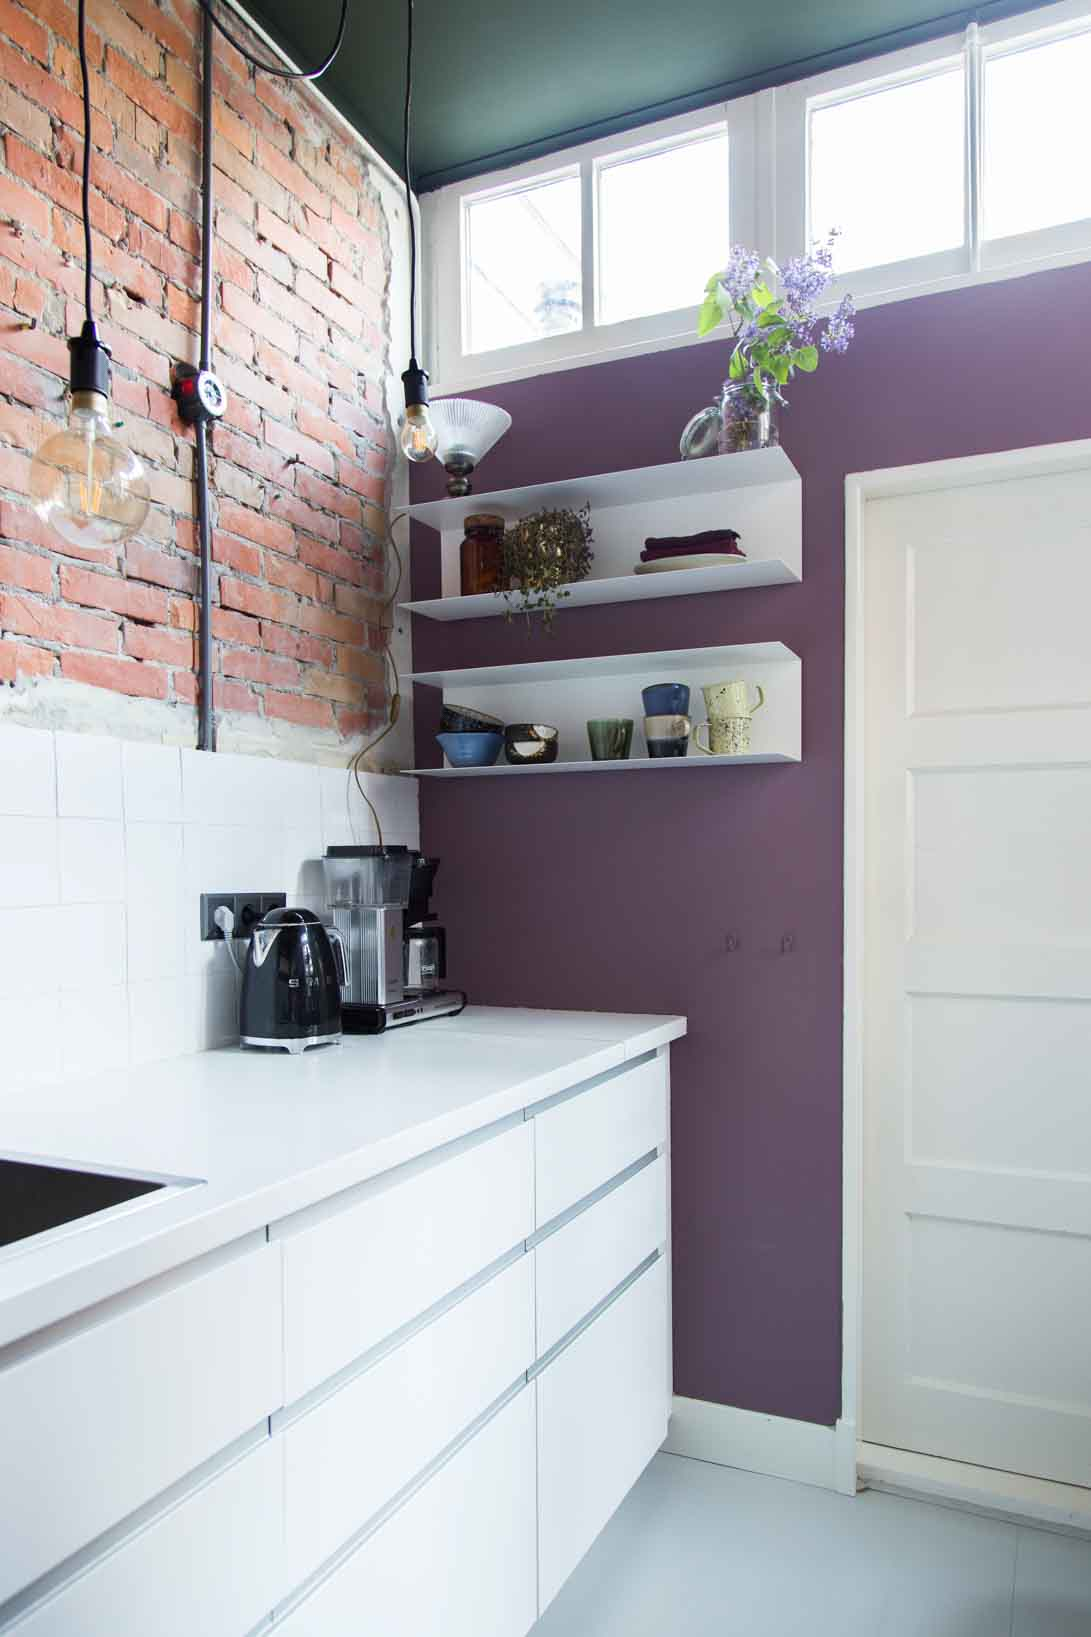 Dusty Lavender a soft pinkish purple tone in the kitchen